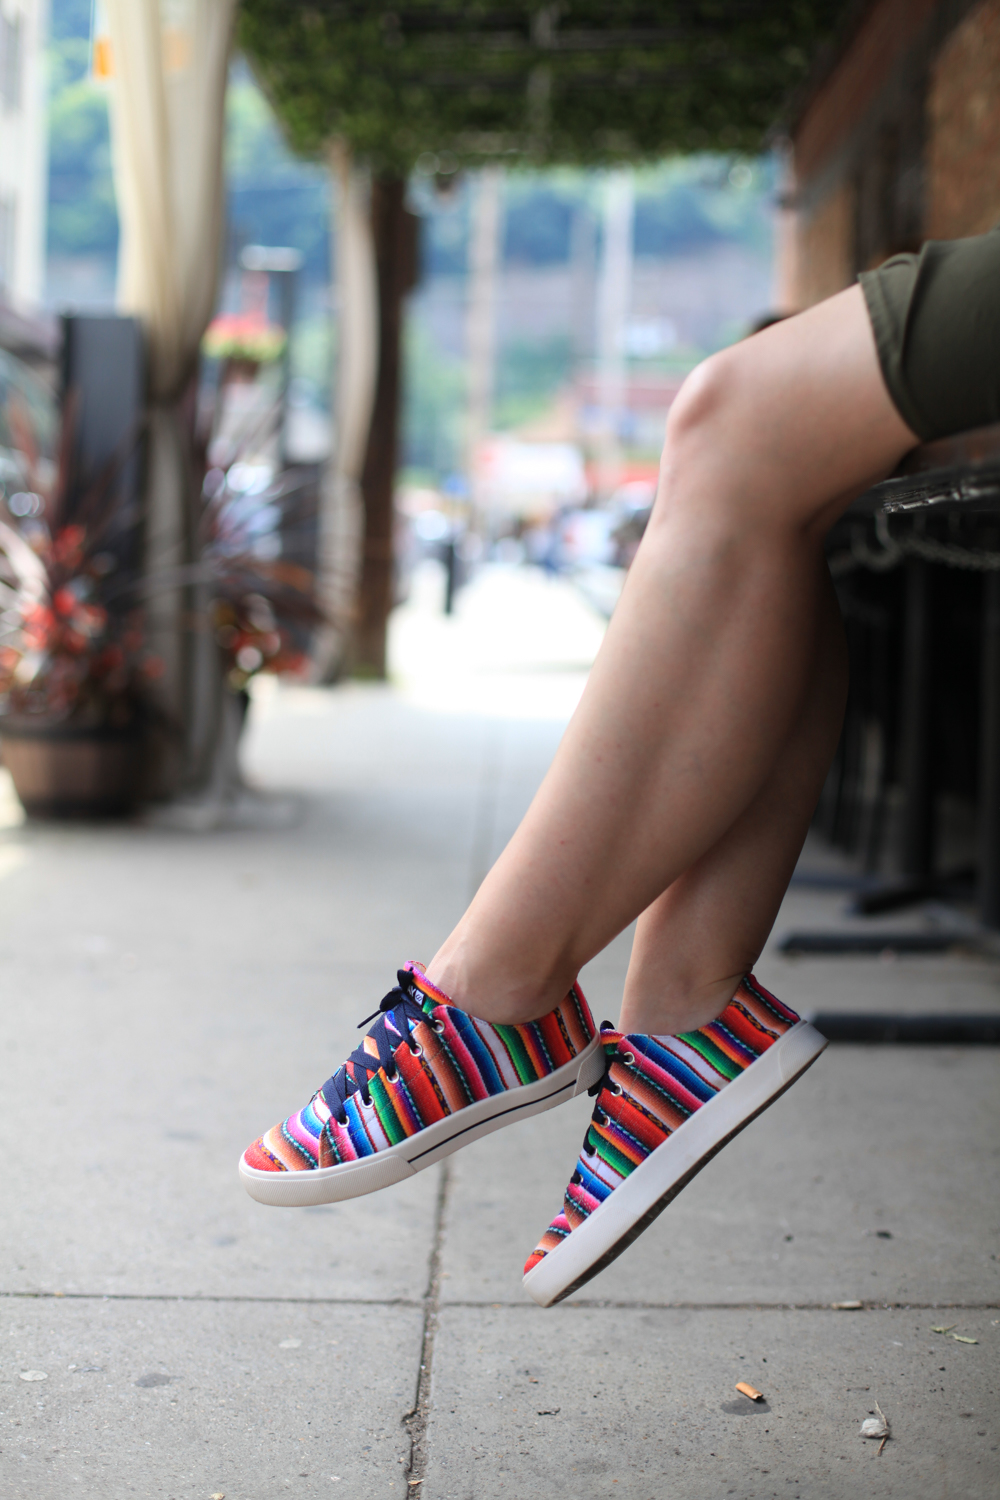 ISKAY handmade shoes are both comfortable and colorful.